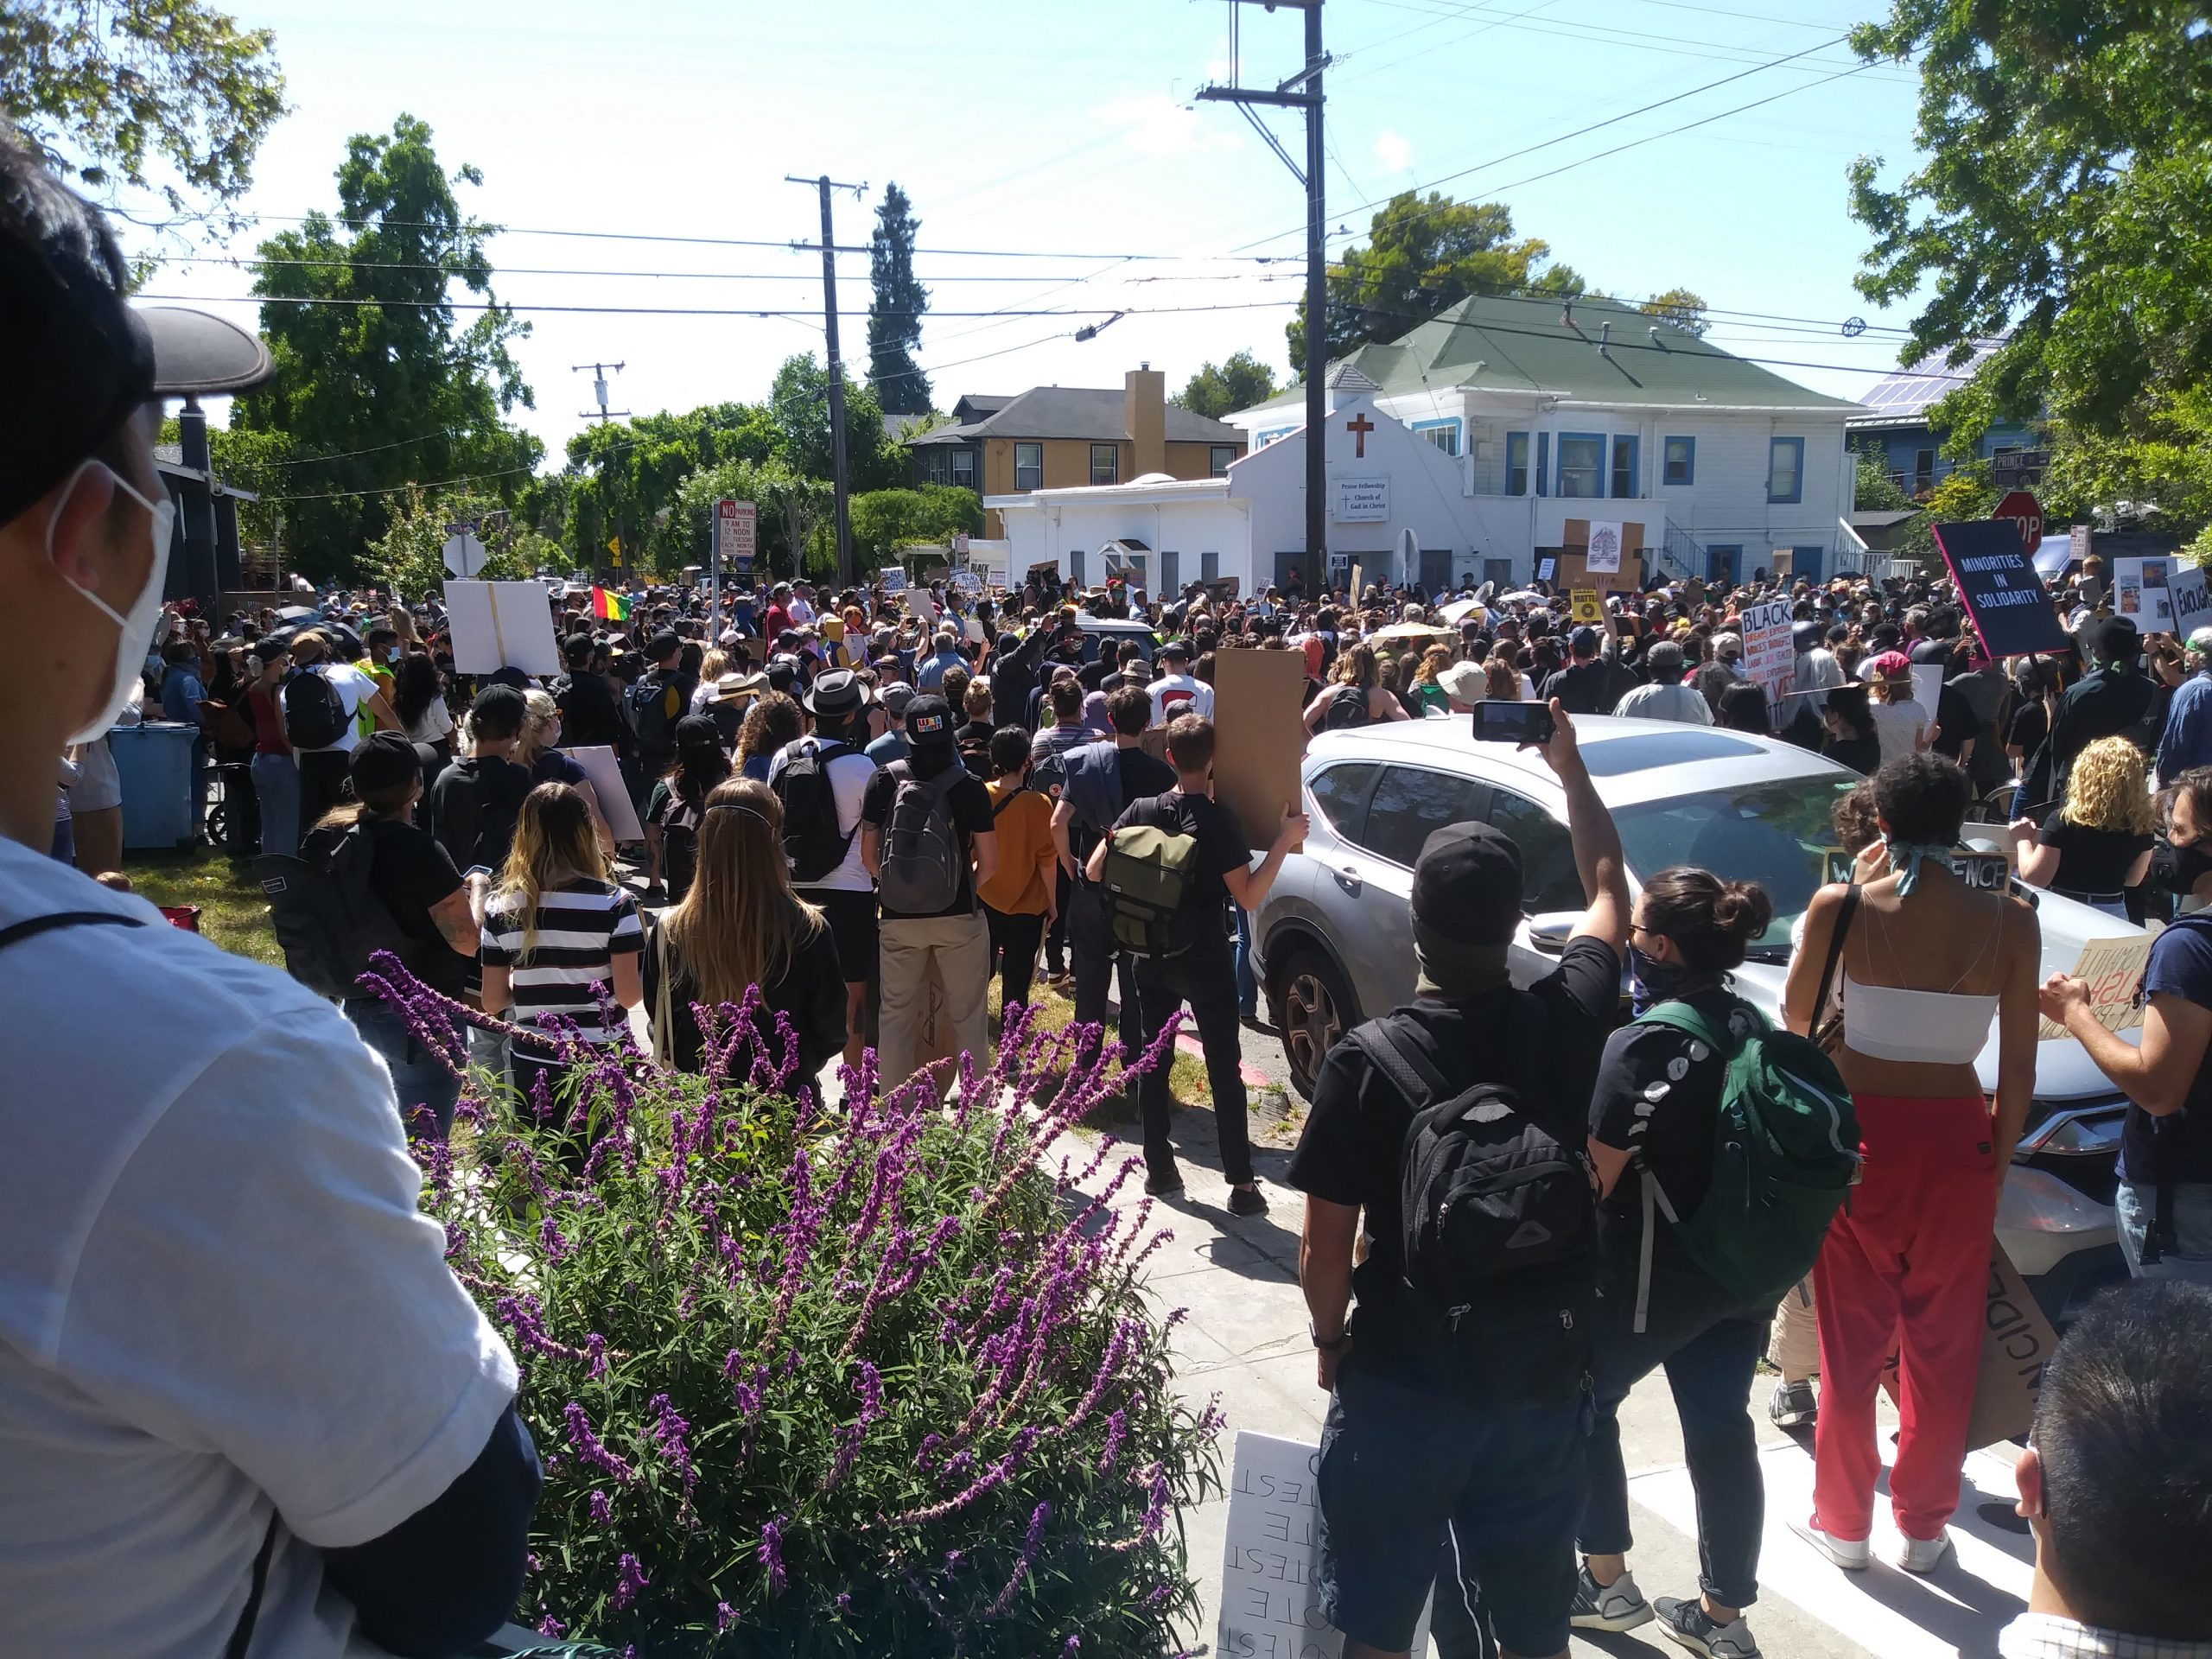 A large crowd with most people wearing masks gather in Berkeley for a Black Lives Matter protest.